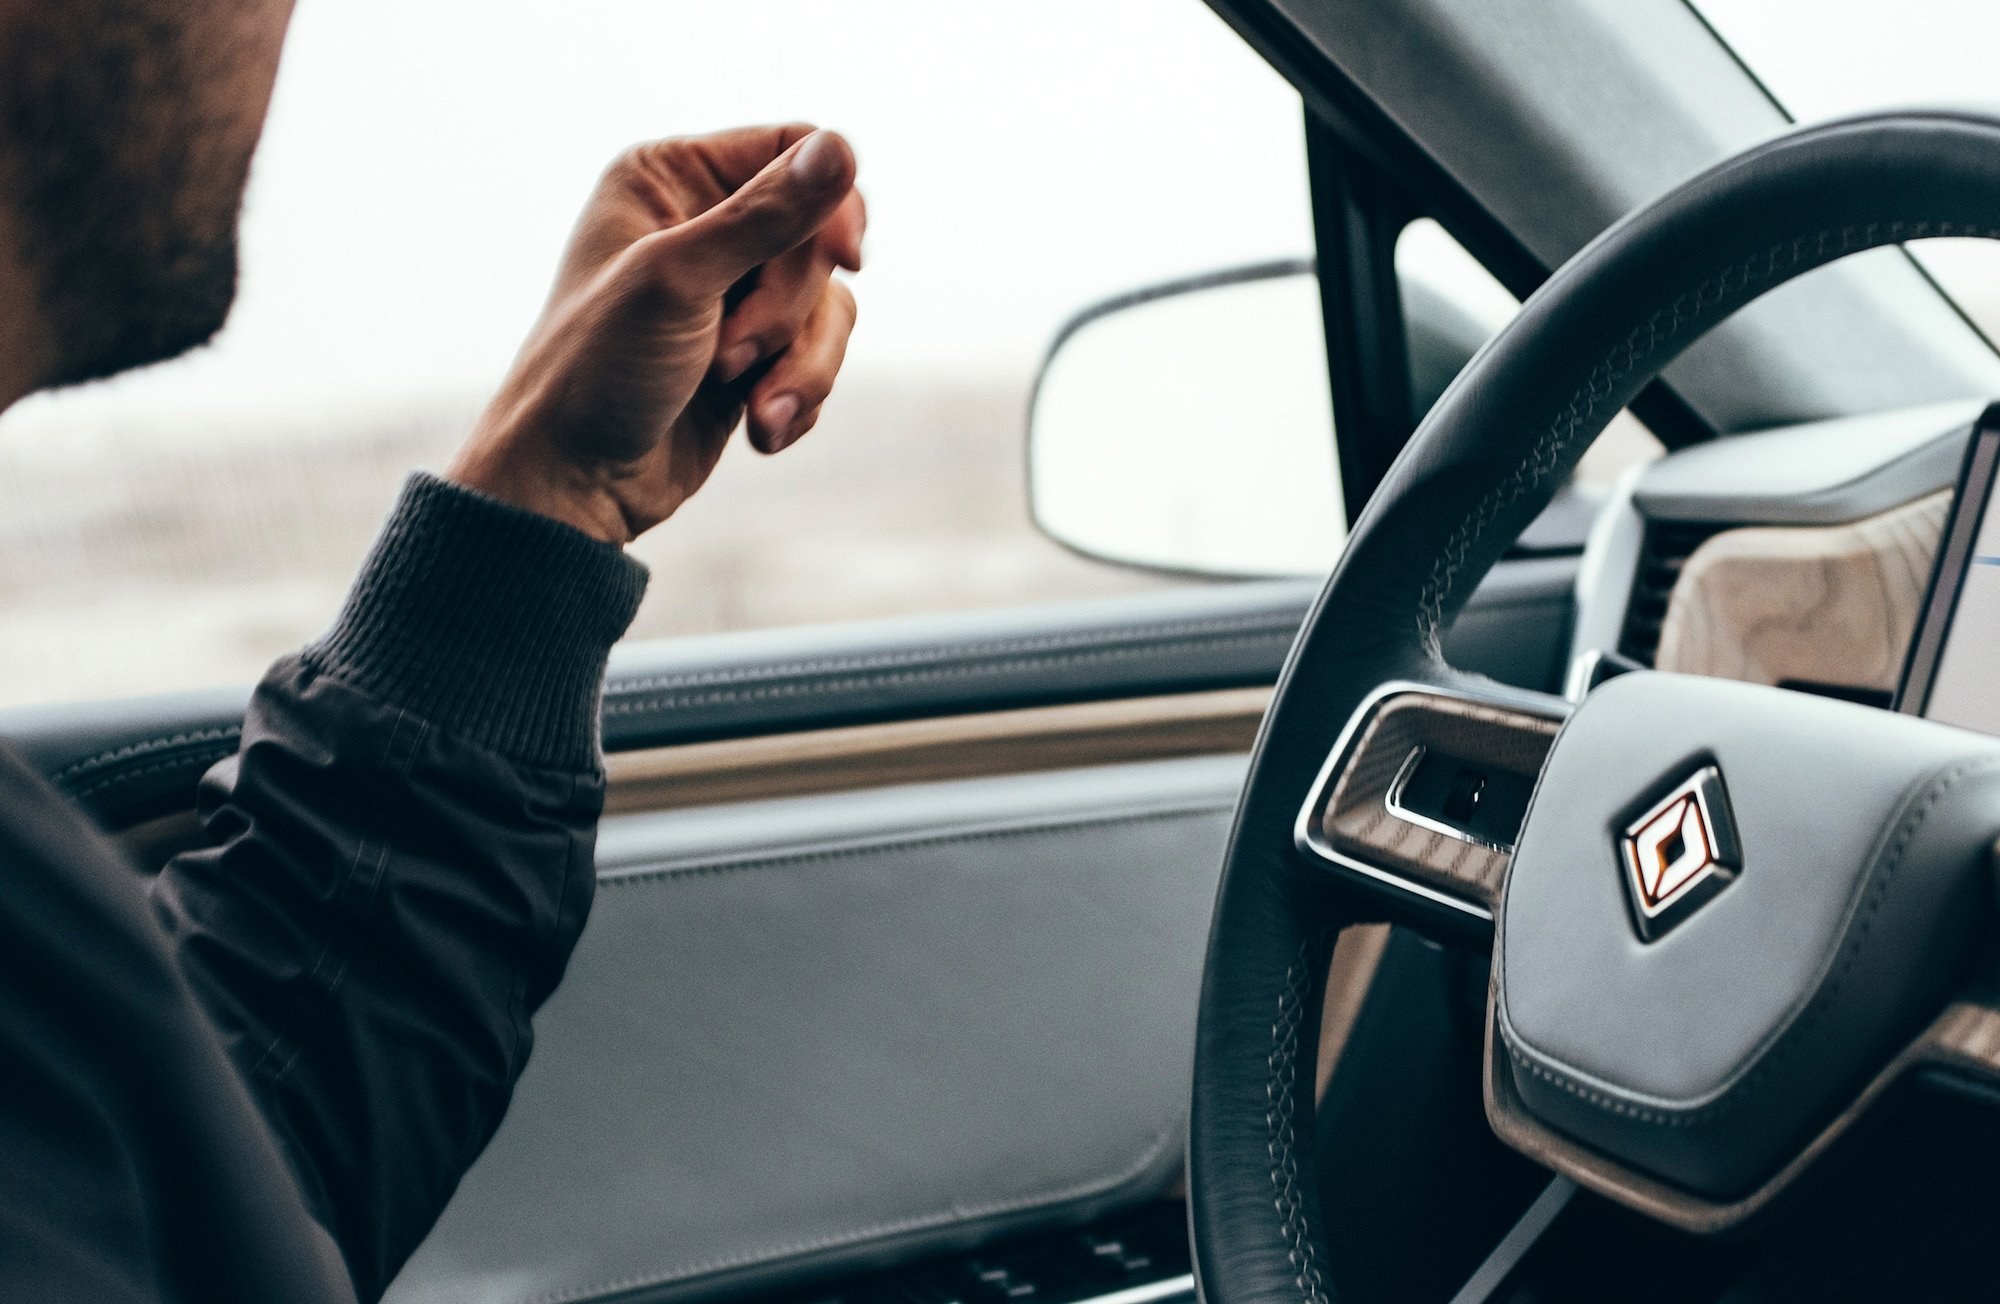 Hands-free driving assistance on every Rivian vehicle at no additional cost.